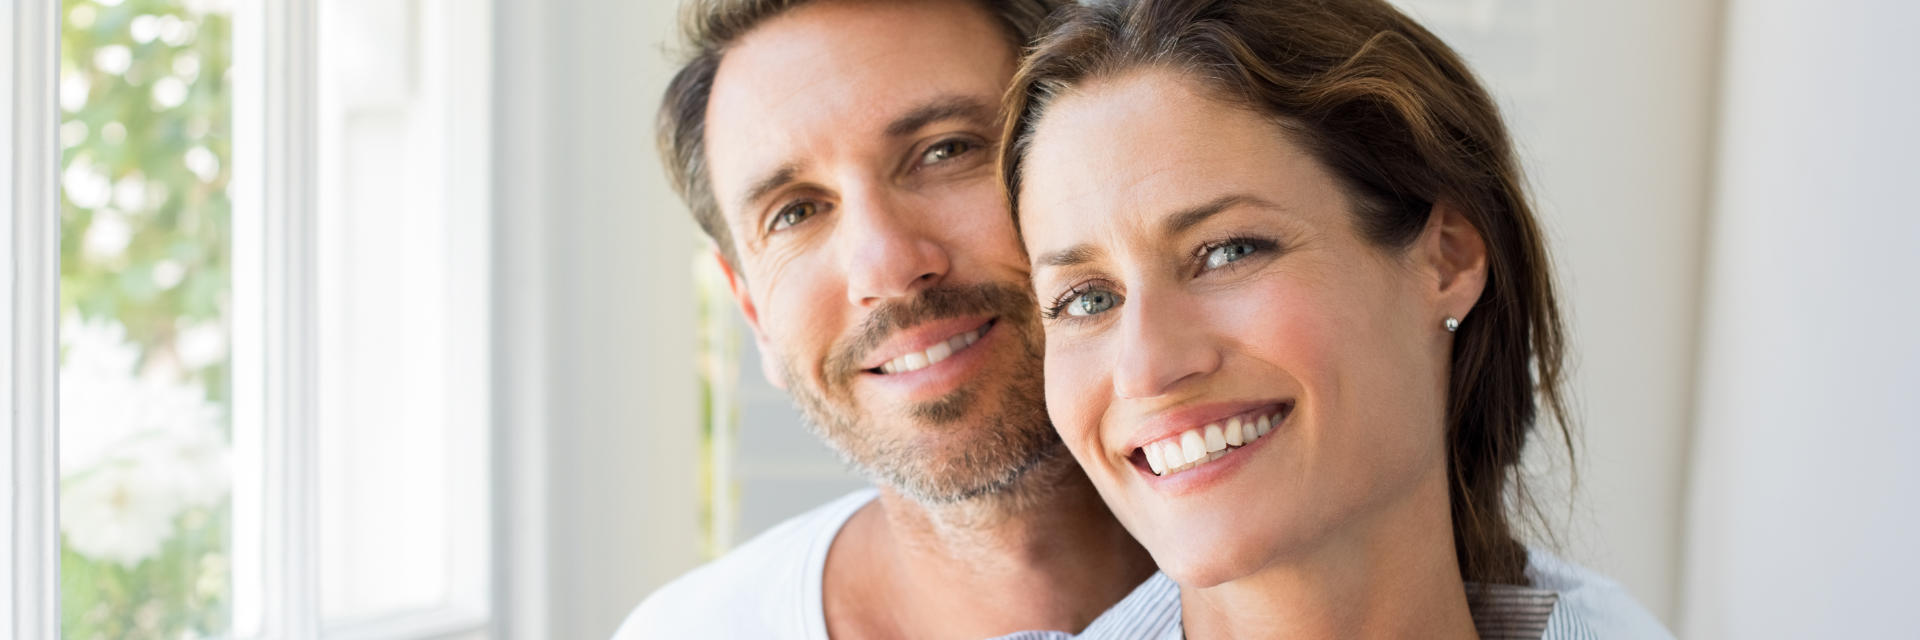 Happy middle-aged couple showing their nice teeth after dental crowns treatment in their smiles.